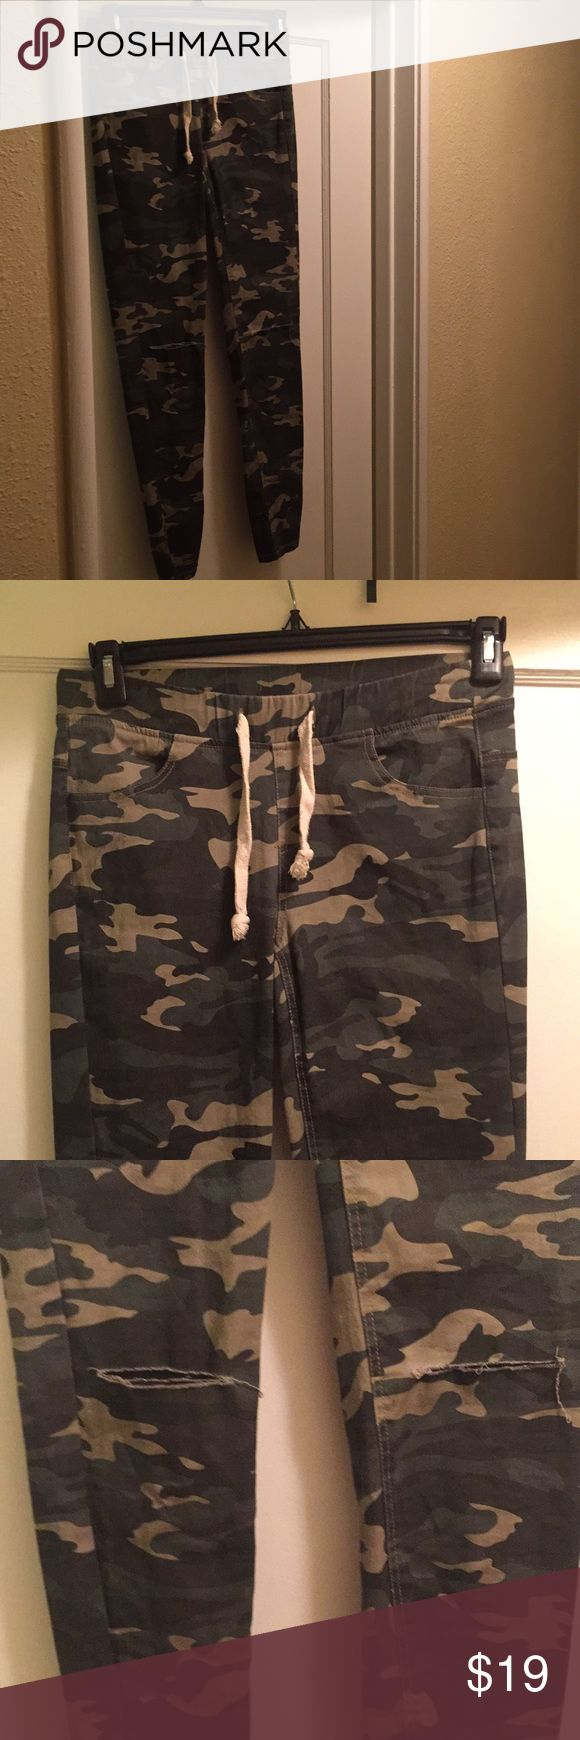 Camo skinny pants. New. Slits in both knees. New Active USA camouflage skinny pants. Elastic waistband with drawstring. Slits in both knees. Never worn, excellent condition. Active USA Pants Skinny